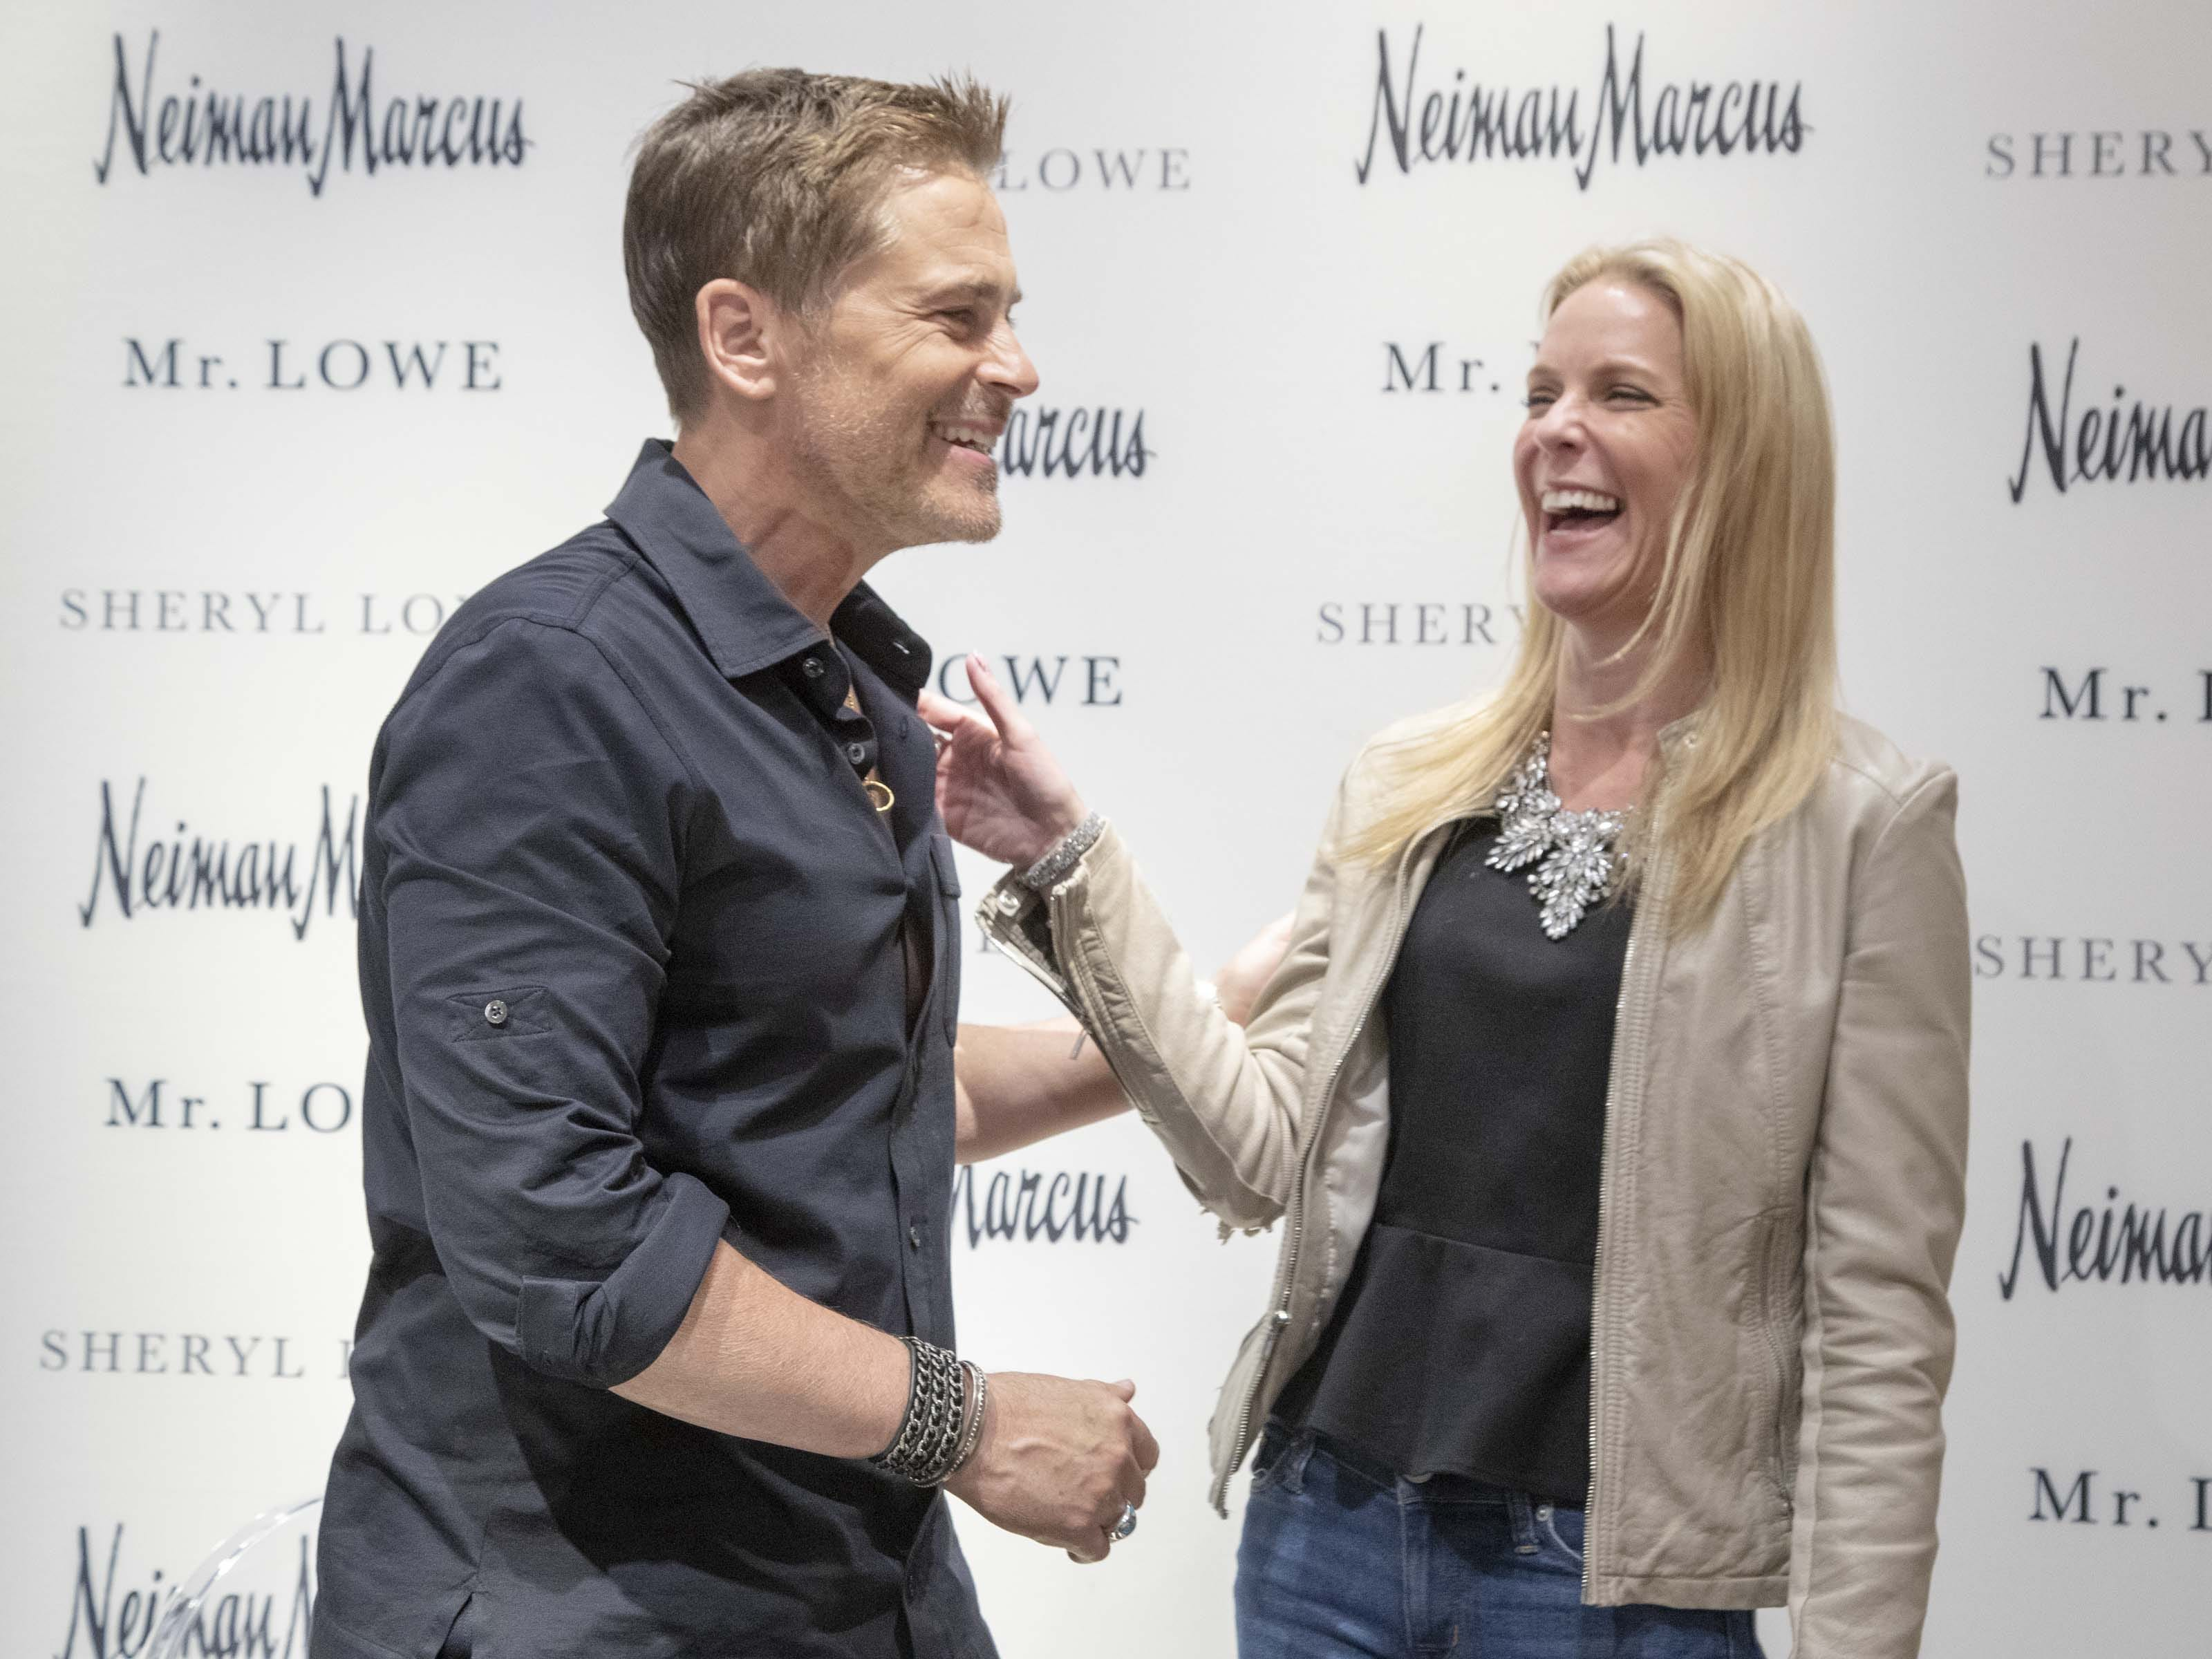 Actor Rob Lowe shares a laugh with his fan Alison Johnson during an event introducing his new men's jewelry collection at Scottsdale Fashion Square on March 28, 2019.